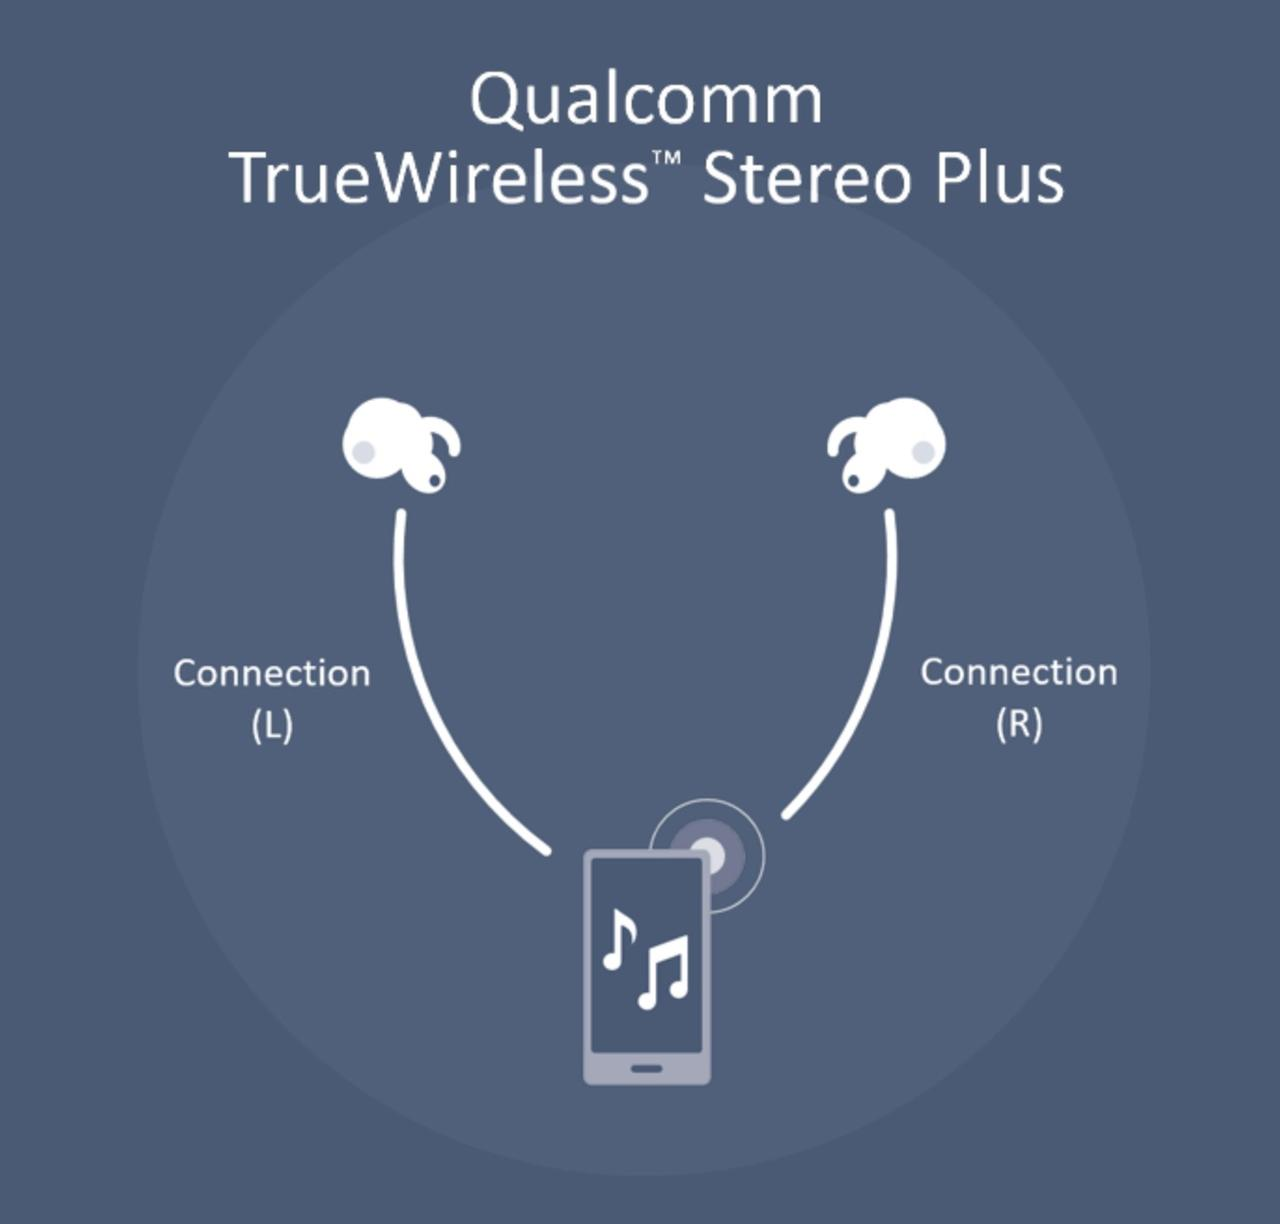 Qualcomm TrueWireless Stereo Plus